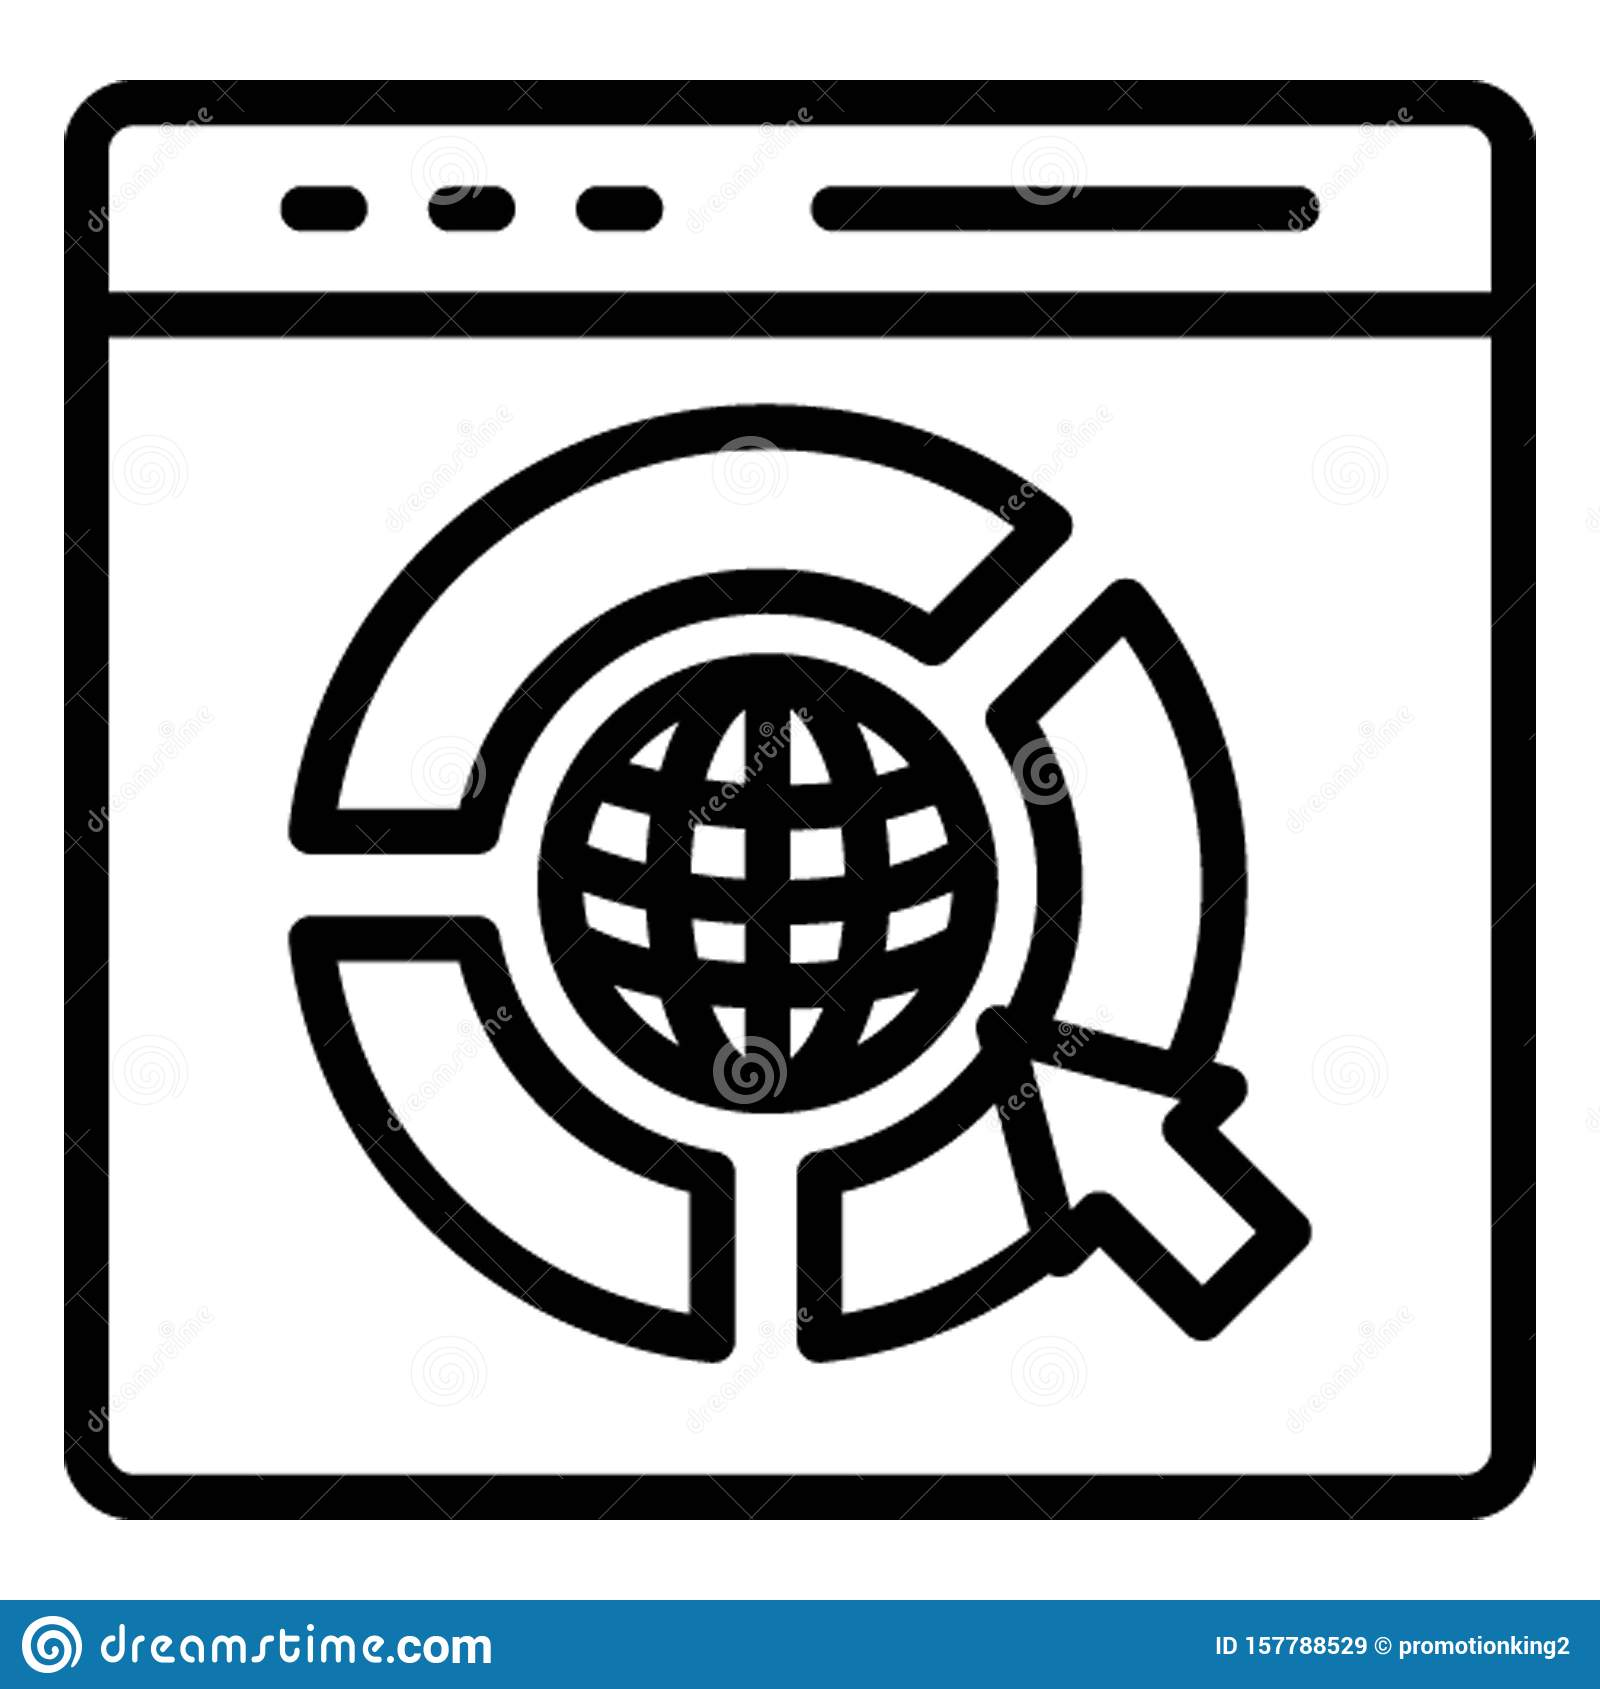 Mobile configuration, online maintenance . Vector icon which can easily modify or edit